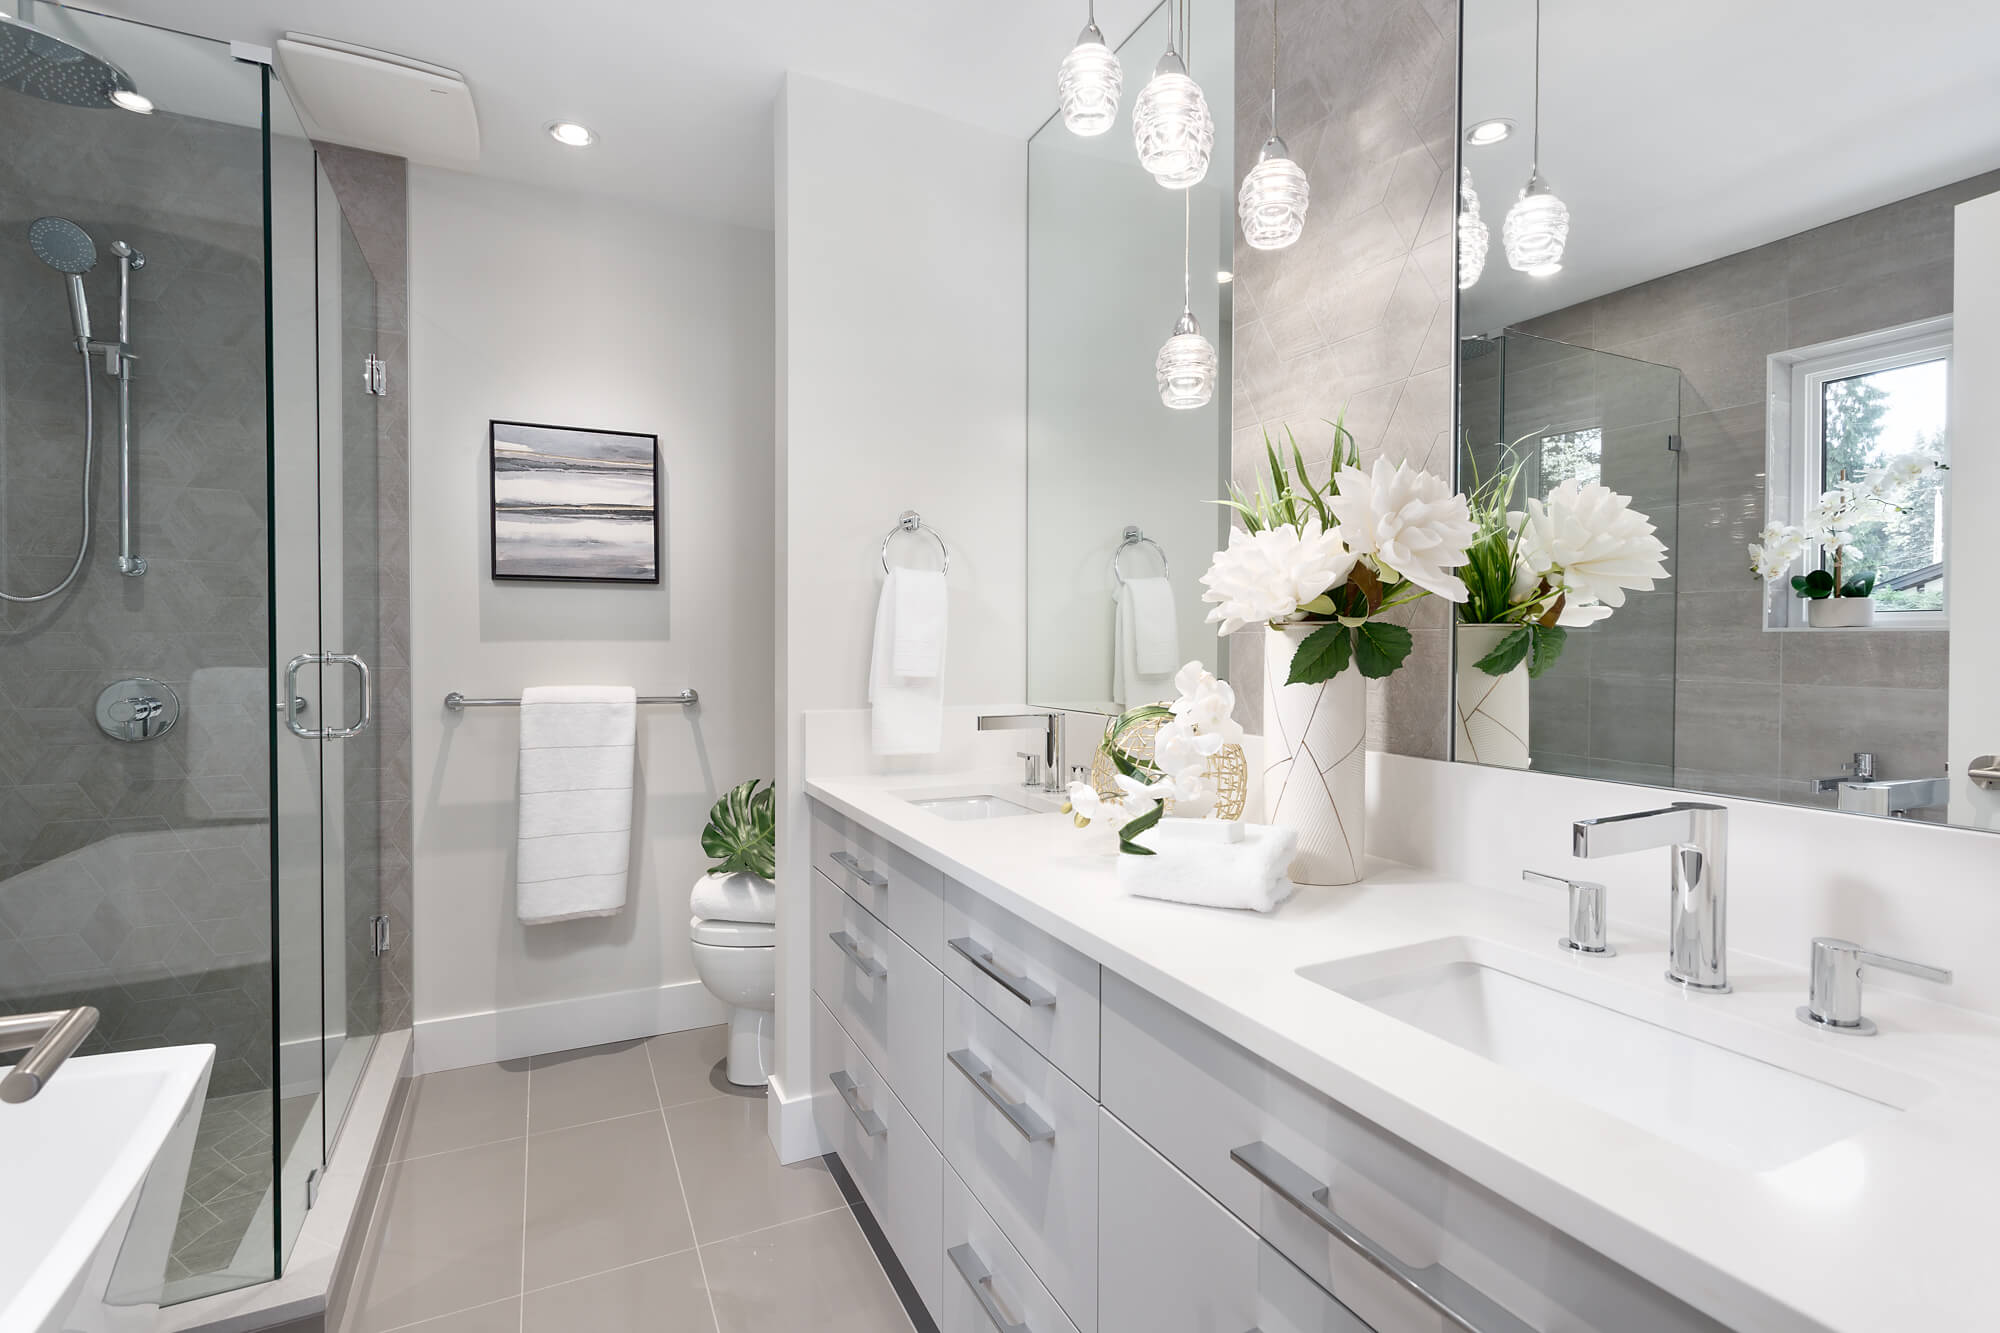 Double Sink Vanity and Mirrors